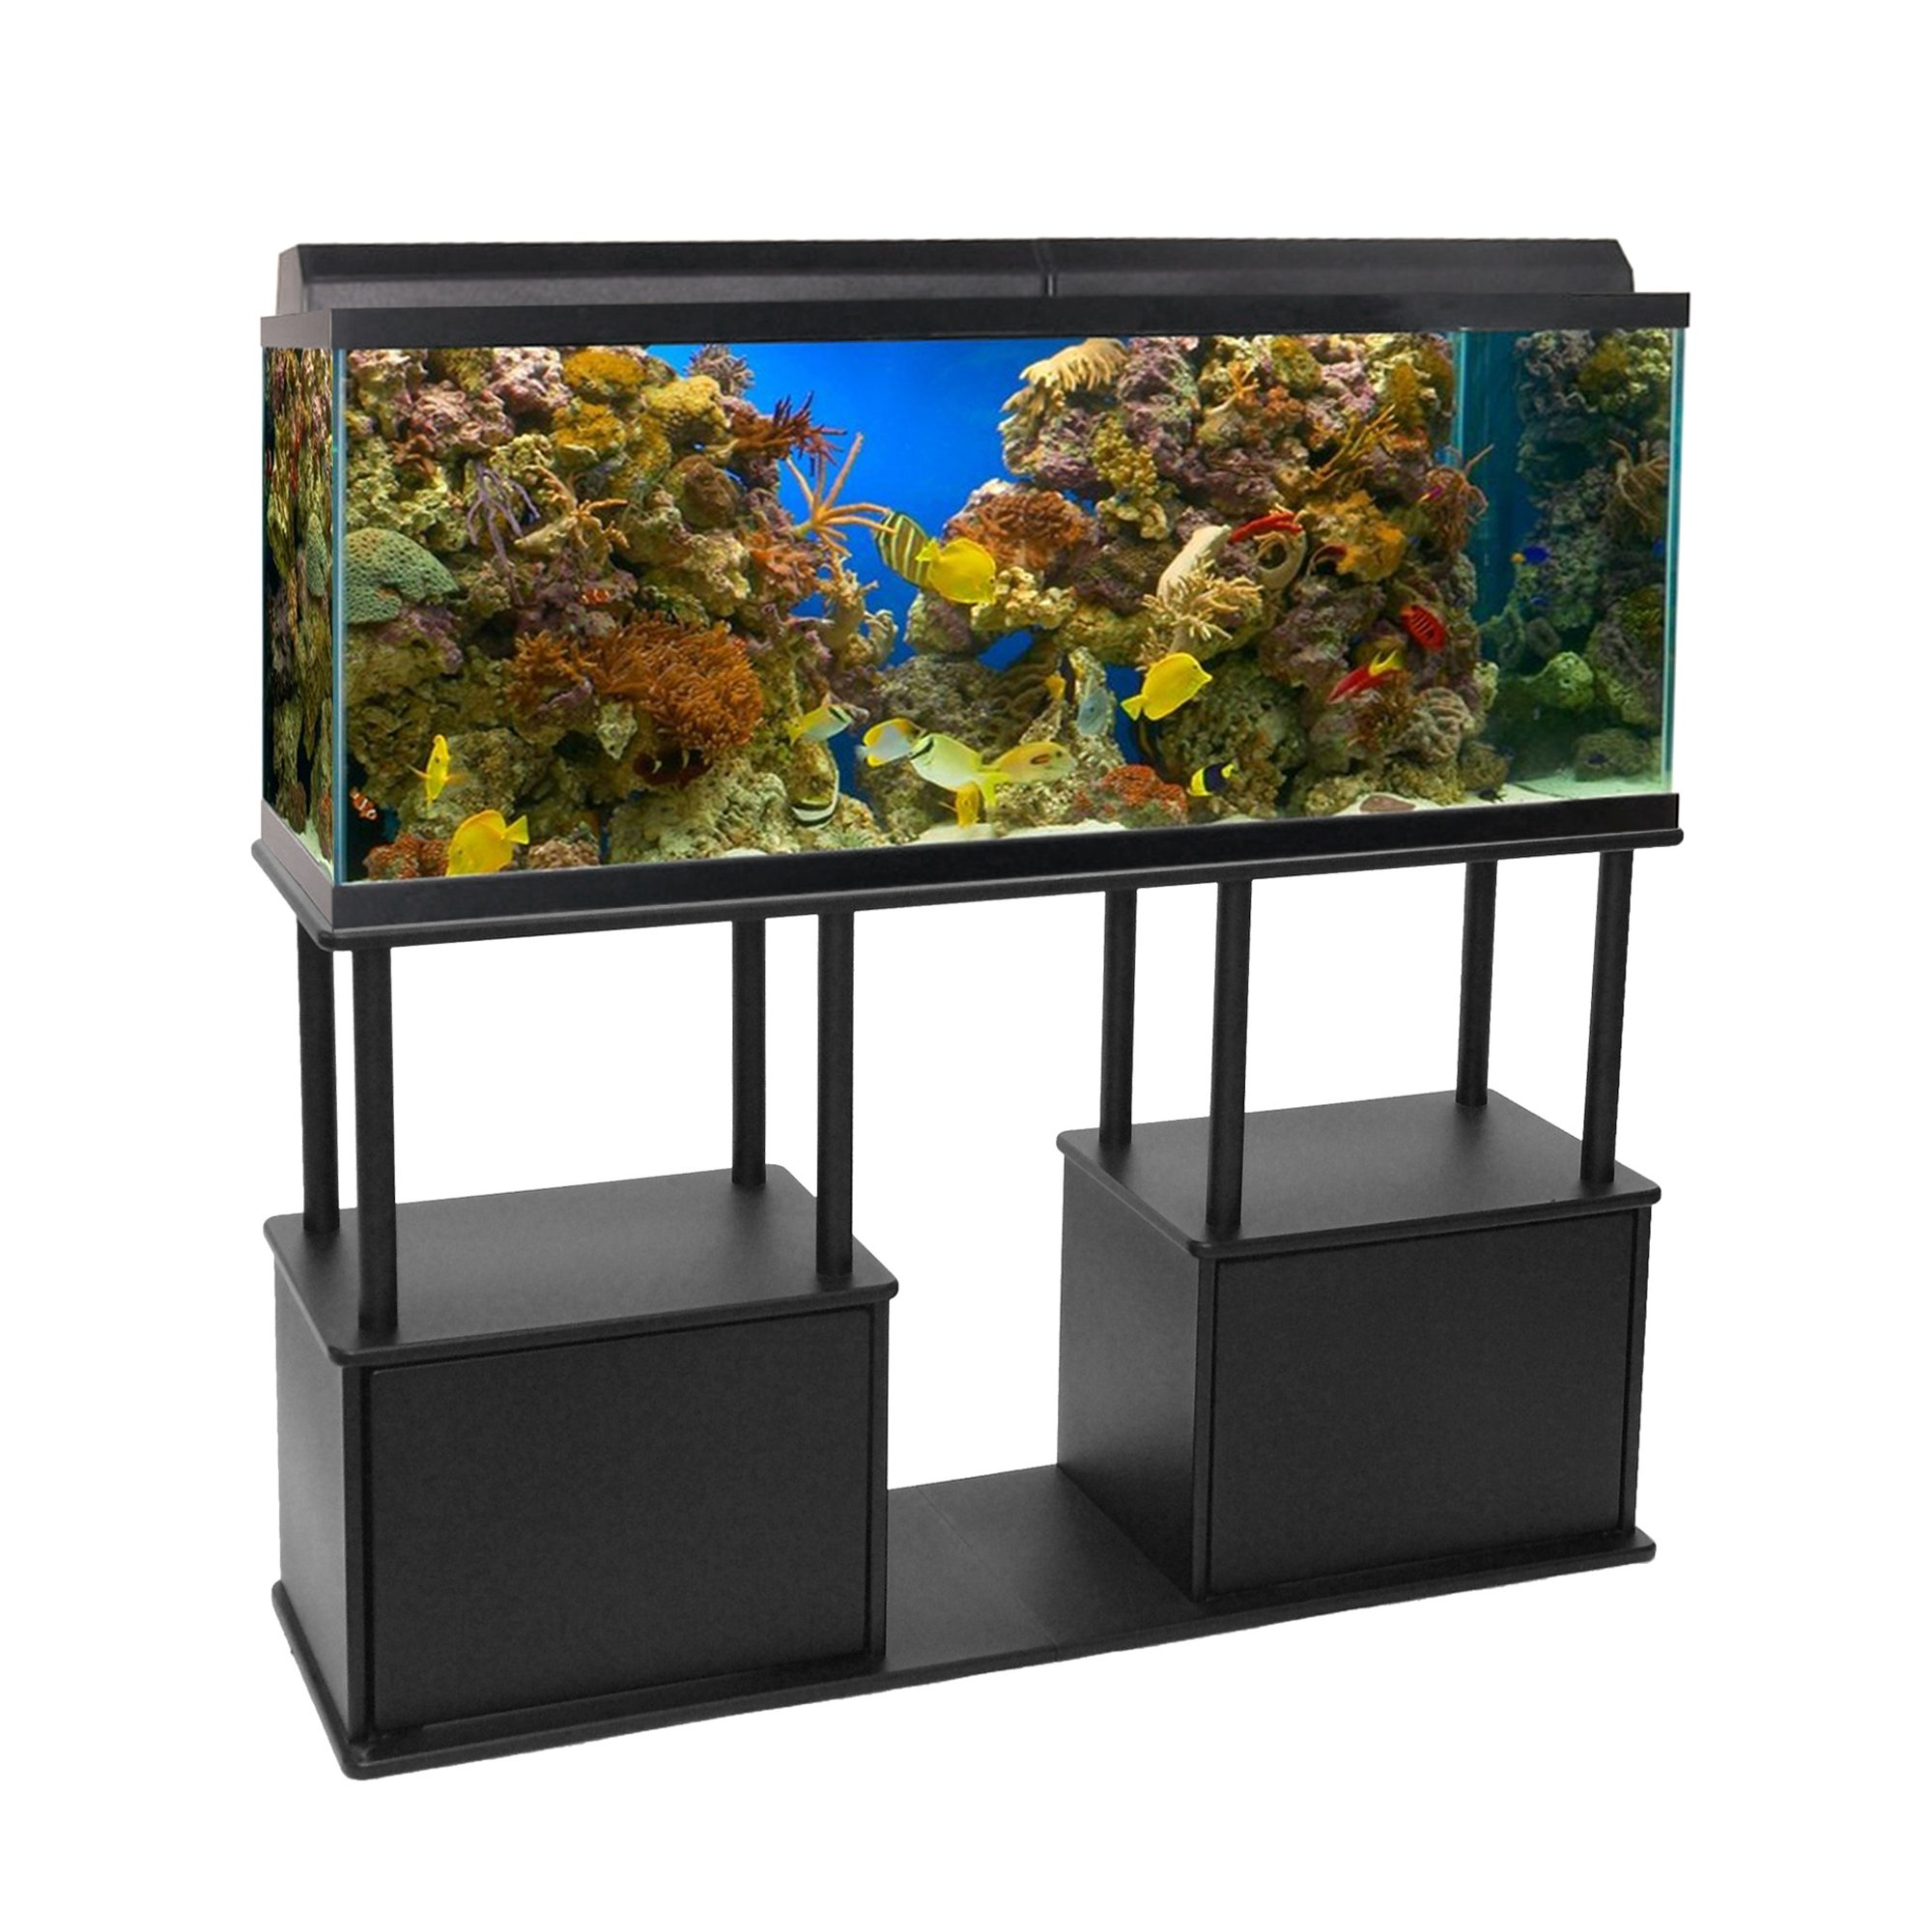 aquatic fundamentals 55 gallon aquarium stand with shelf For55 Gallon Fish Tank Petco